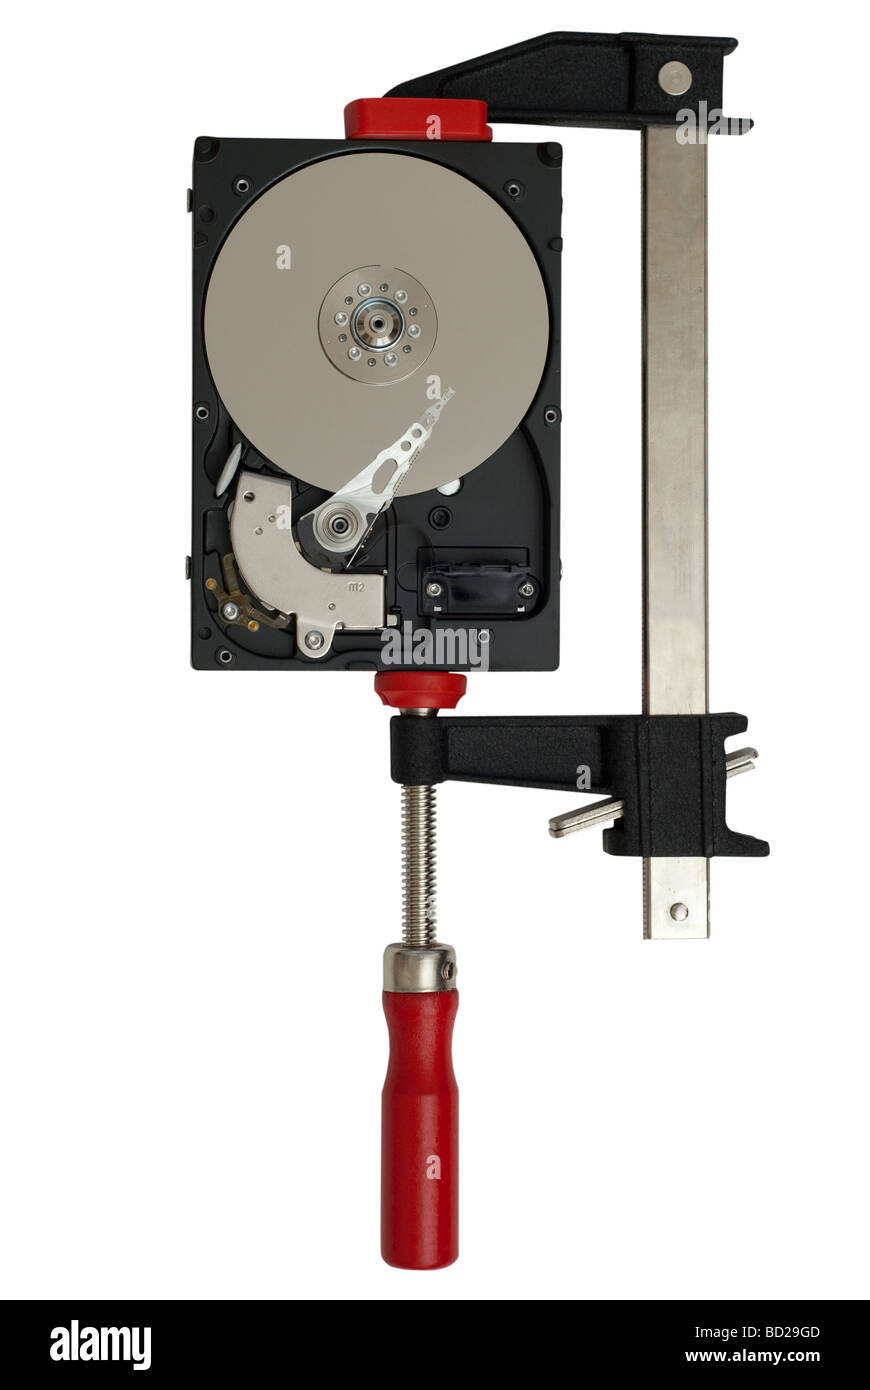 Open hard disk drive in a clamp or vise to visualize the concept of data storage and compression, isolated on white - Stock Image